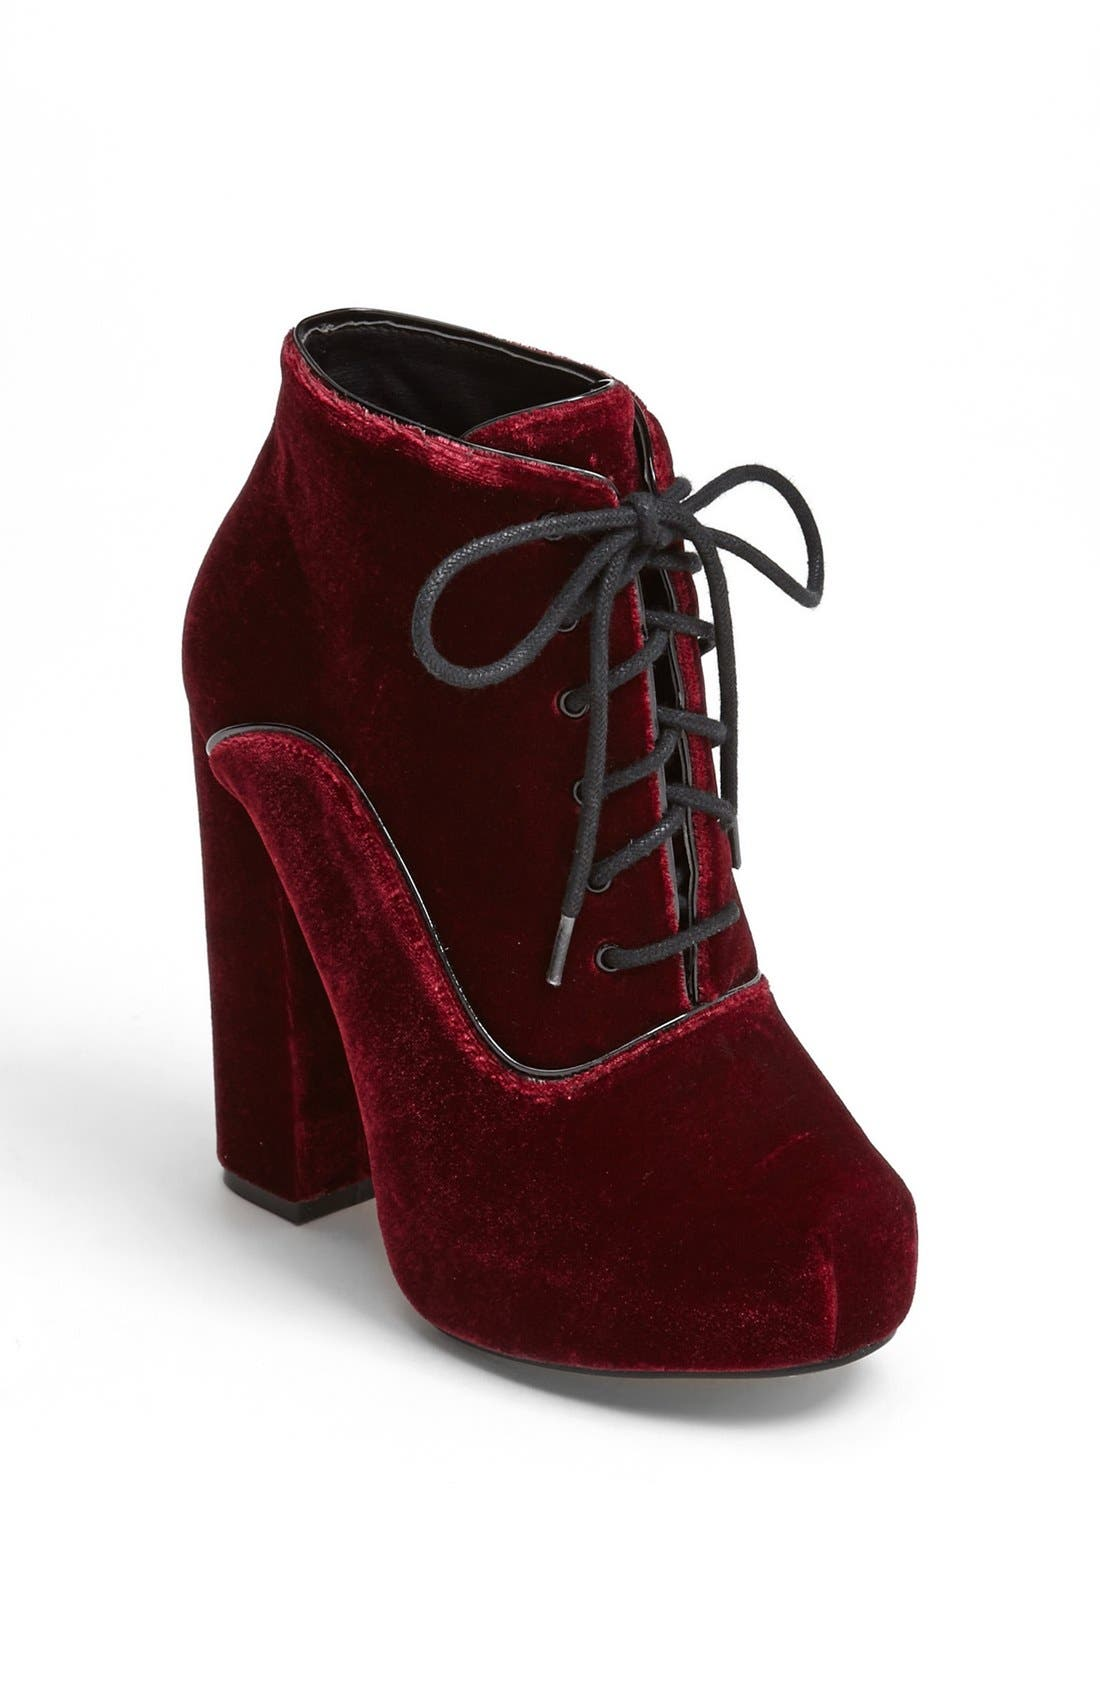 Alternate Image 1 Selected - Shellys London 'Potack' Bootie